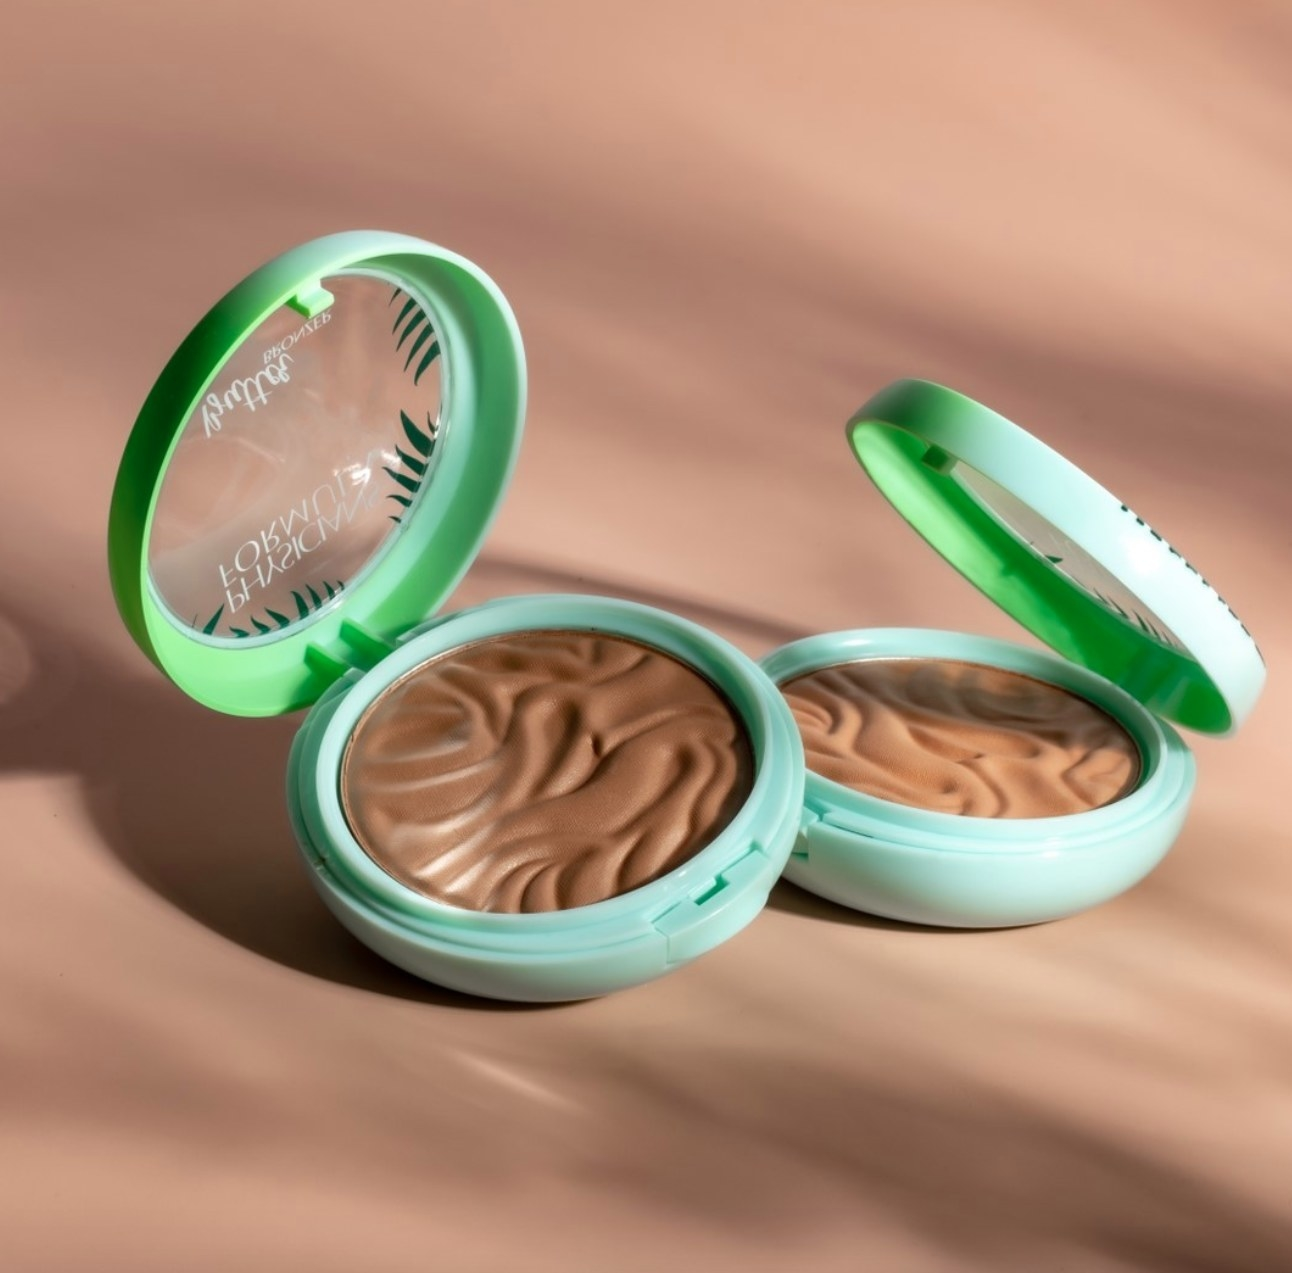 The bronzer in a tan shade